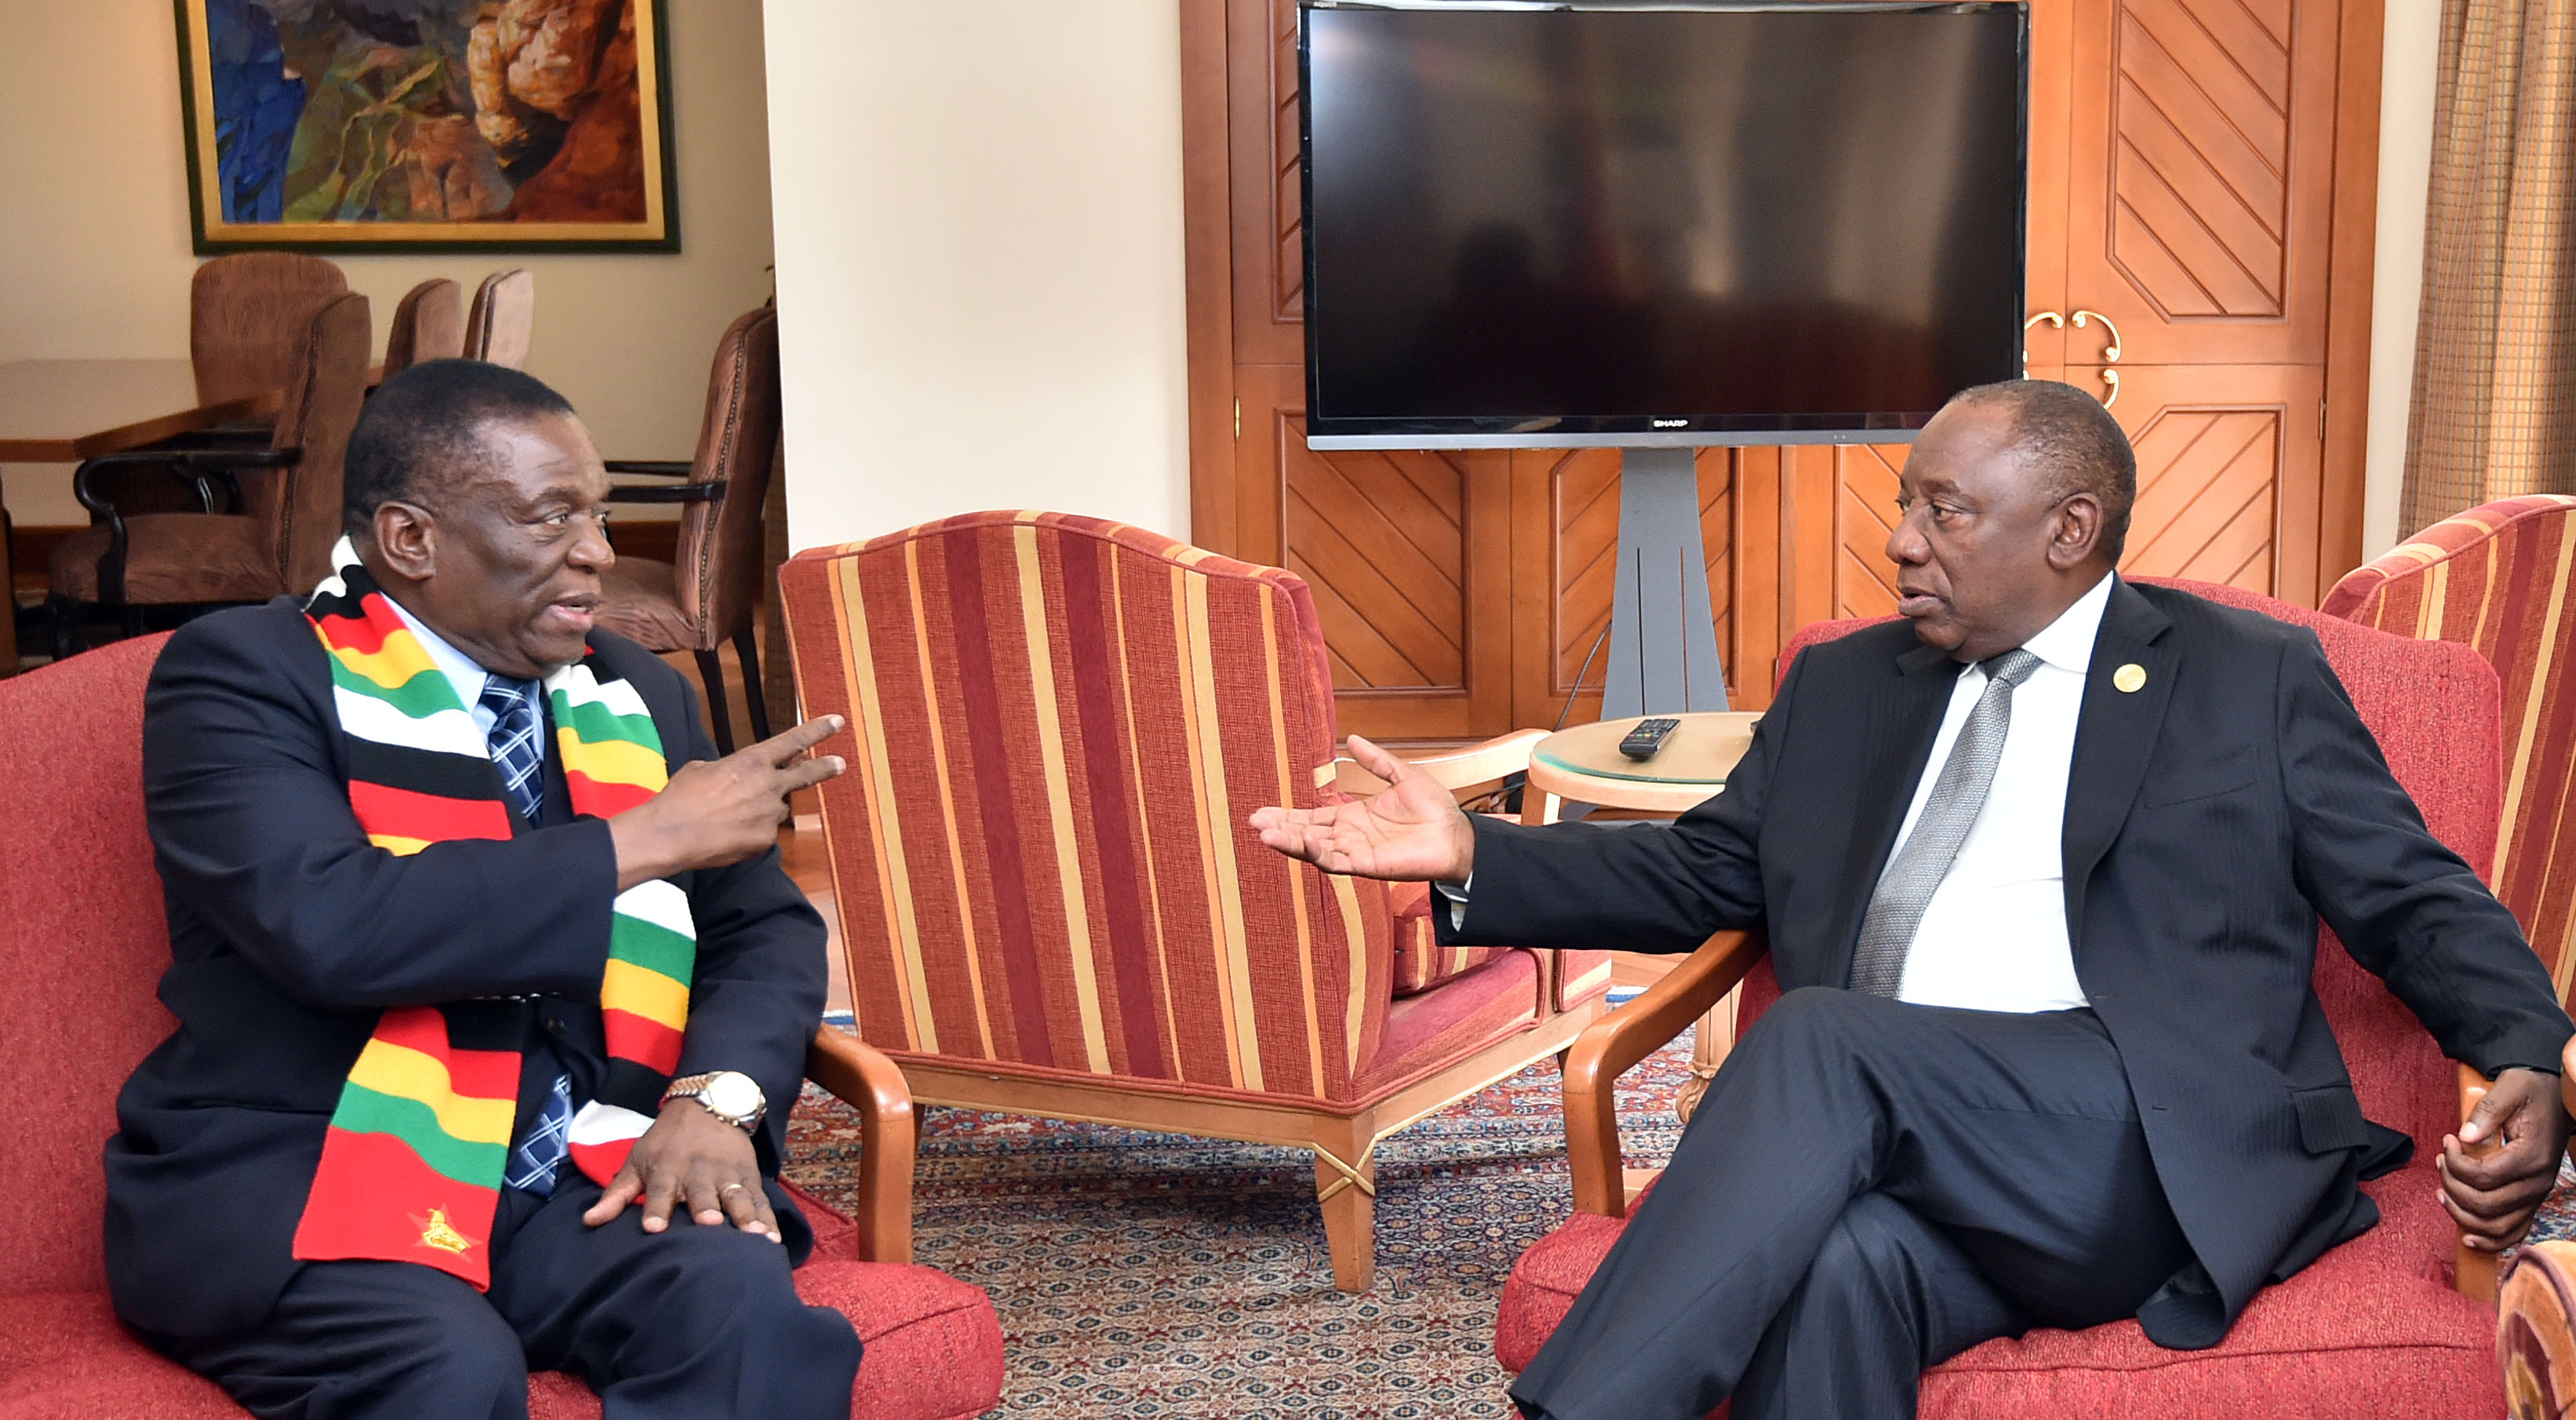 President Cyril Ramaphosa meets with Zimbabwe  President Emmerson Mnangagwa on the margins of the second day of the 32nd Ordinary Session of the Assembly of African in Ethiopia.